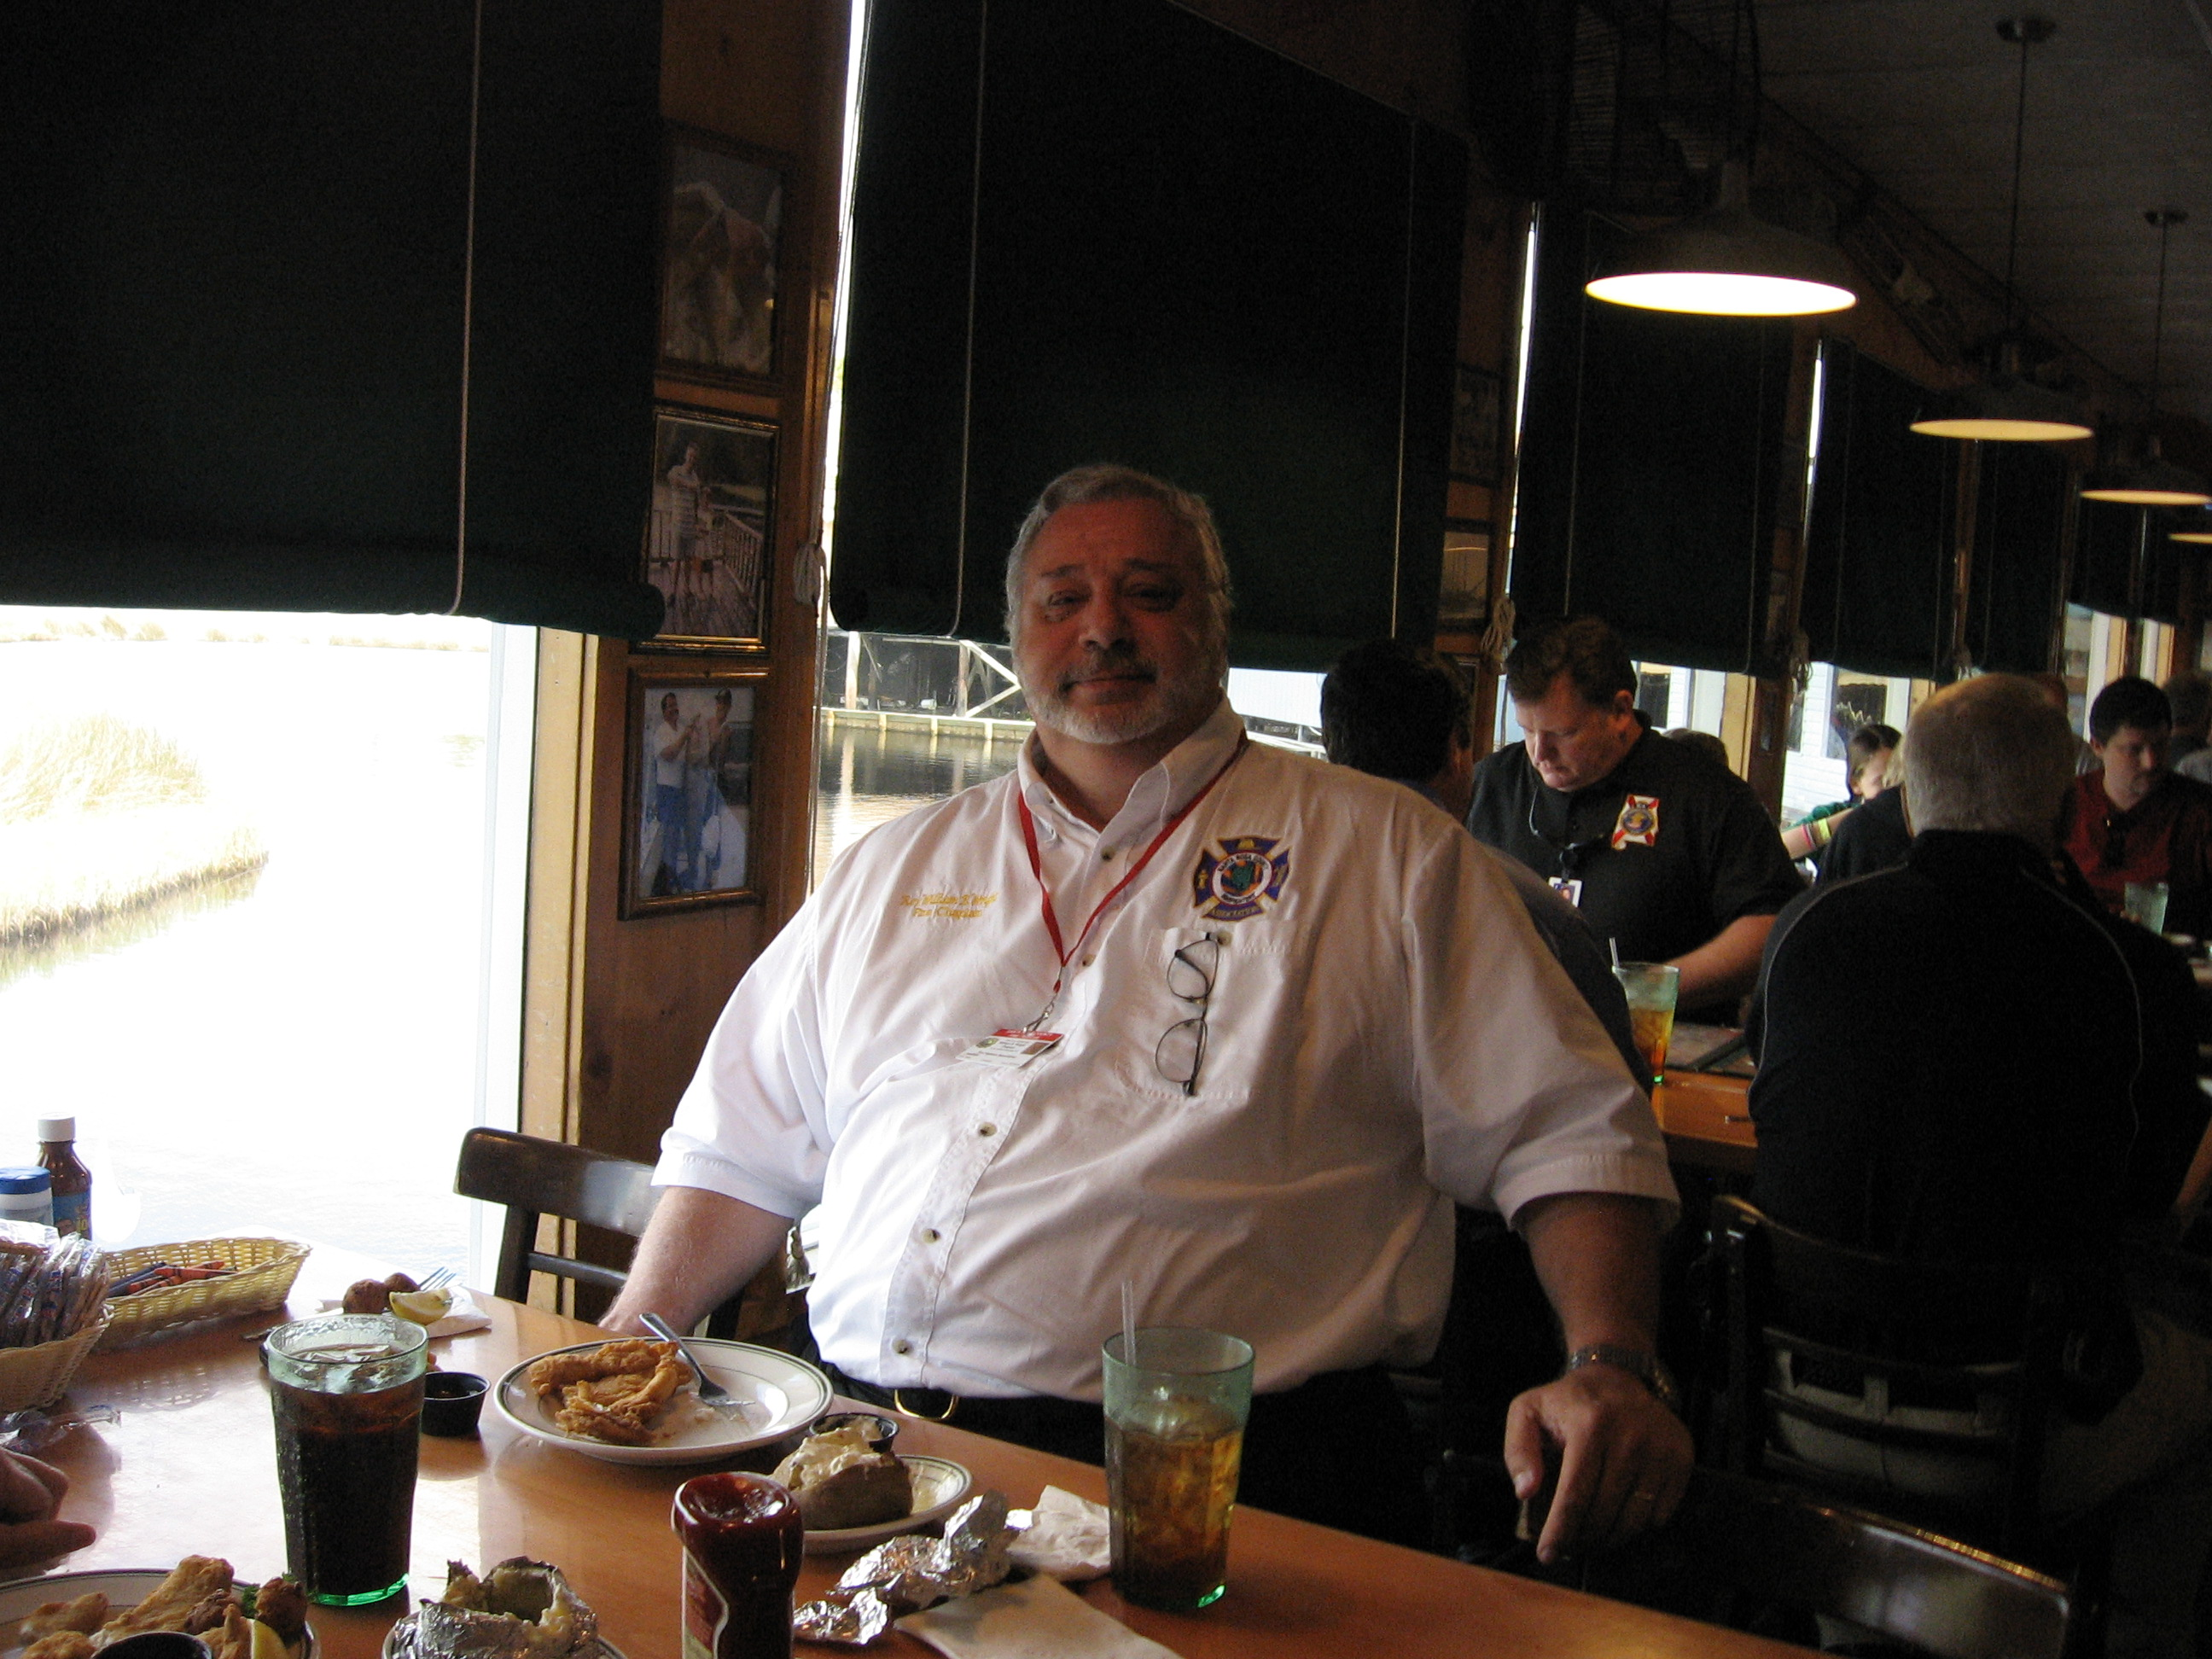 Fireman eating at Original Oyster House's Never Forget Lunch